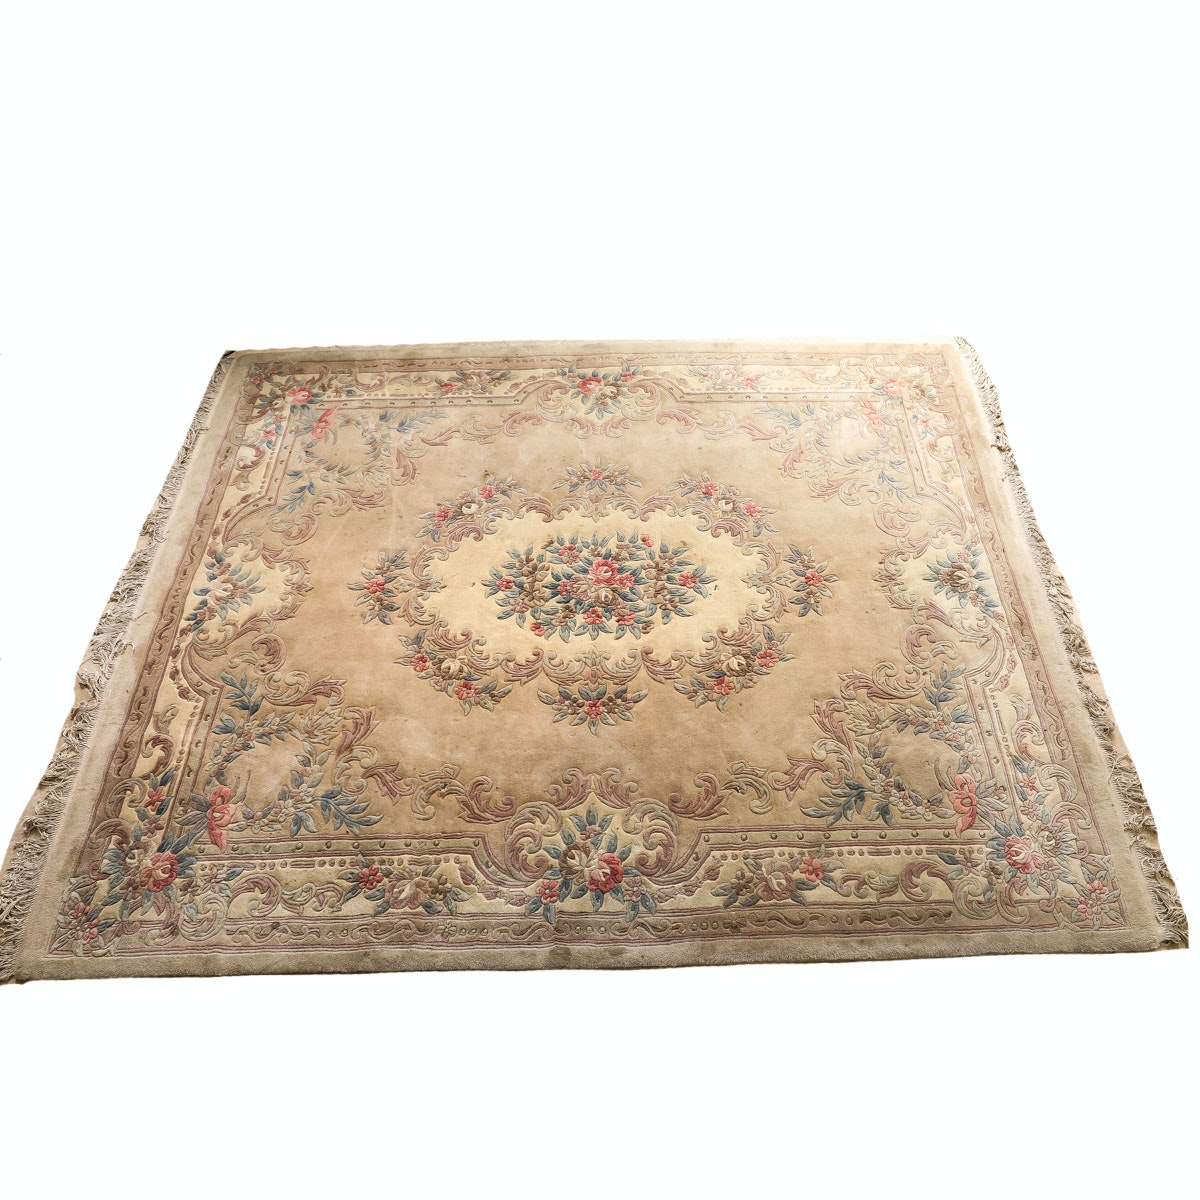 Persian Style Wool Area Rug Ebth: Vintage Carved Wool Chinese Savonnerie-Style Area Rug